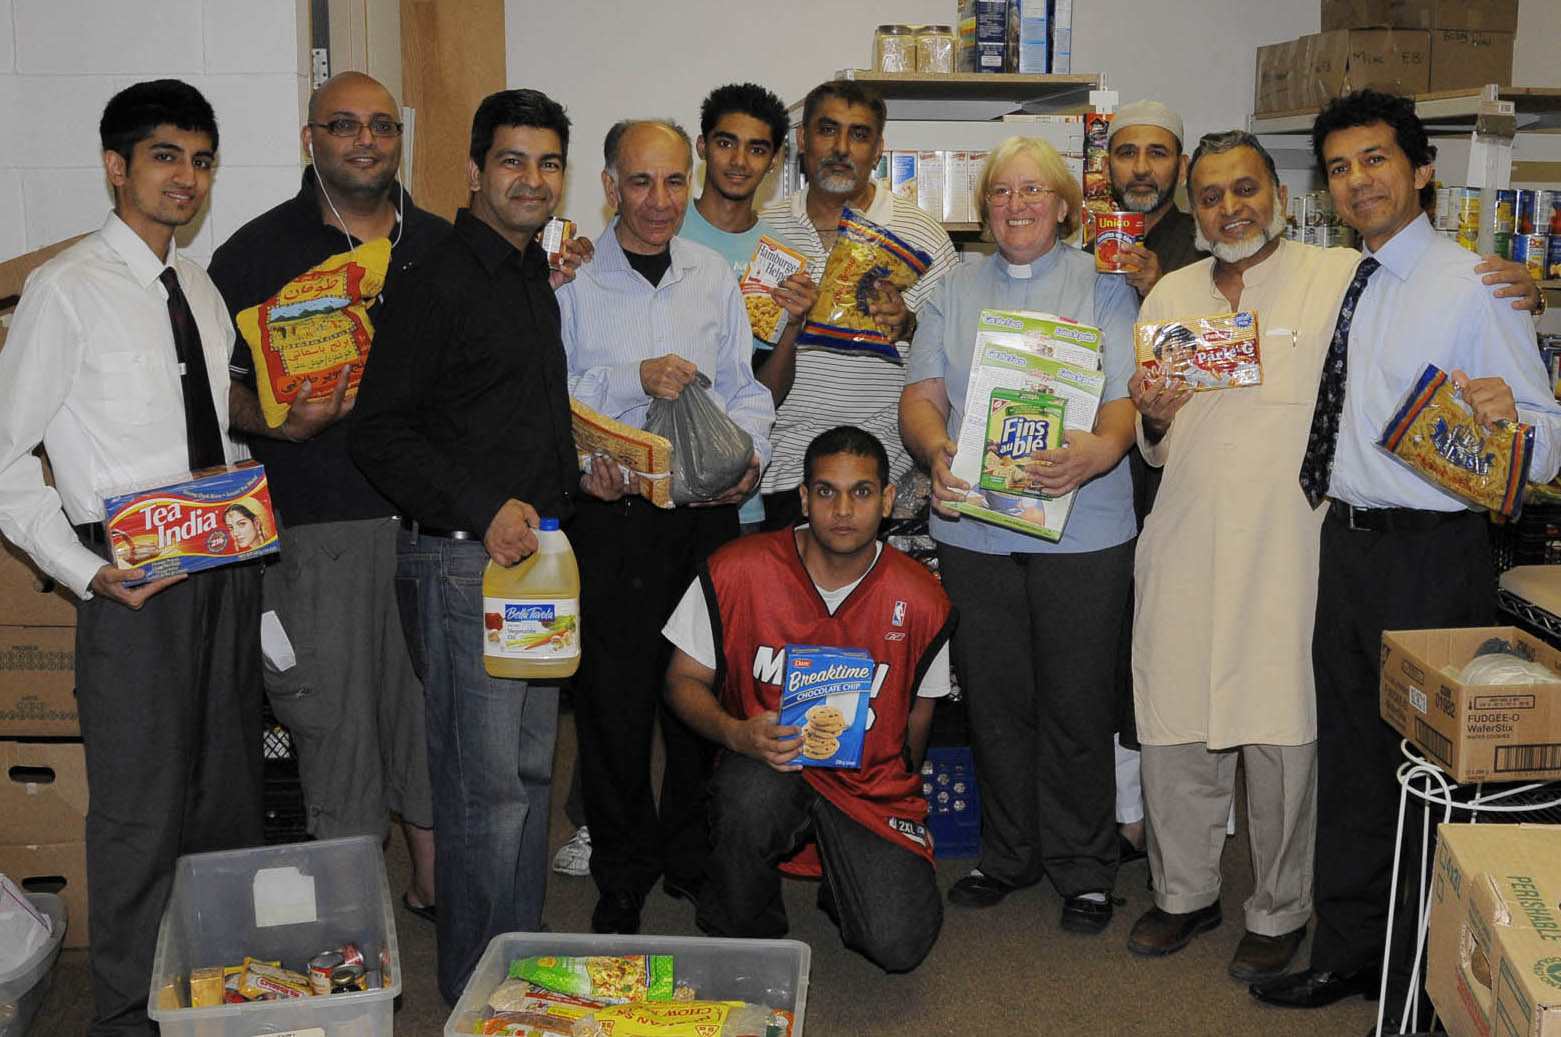 Volunteers from the Ismaili community and the Islamic Society of Toronto with Rev Helena-Rose Houldcroft, Director of the Flemingdon Park Ministry, at the food bank. Photo: Moez Visram